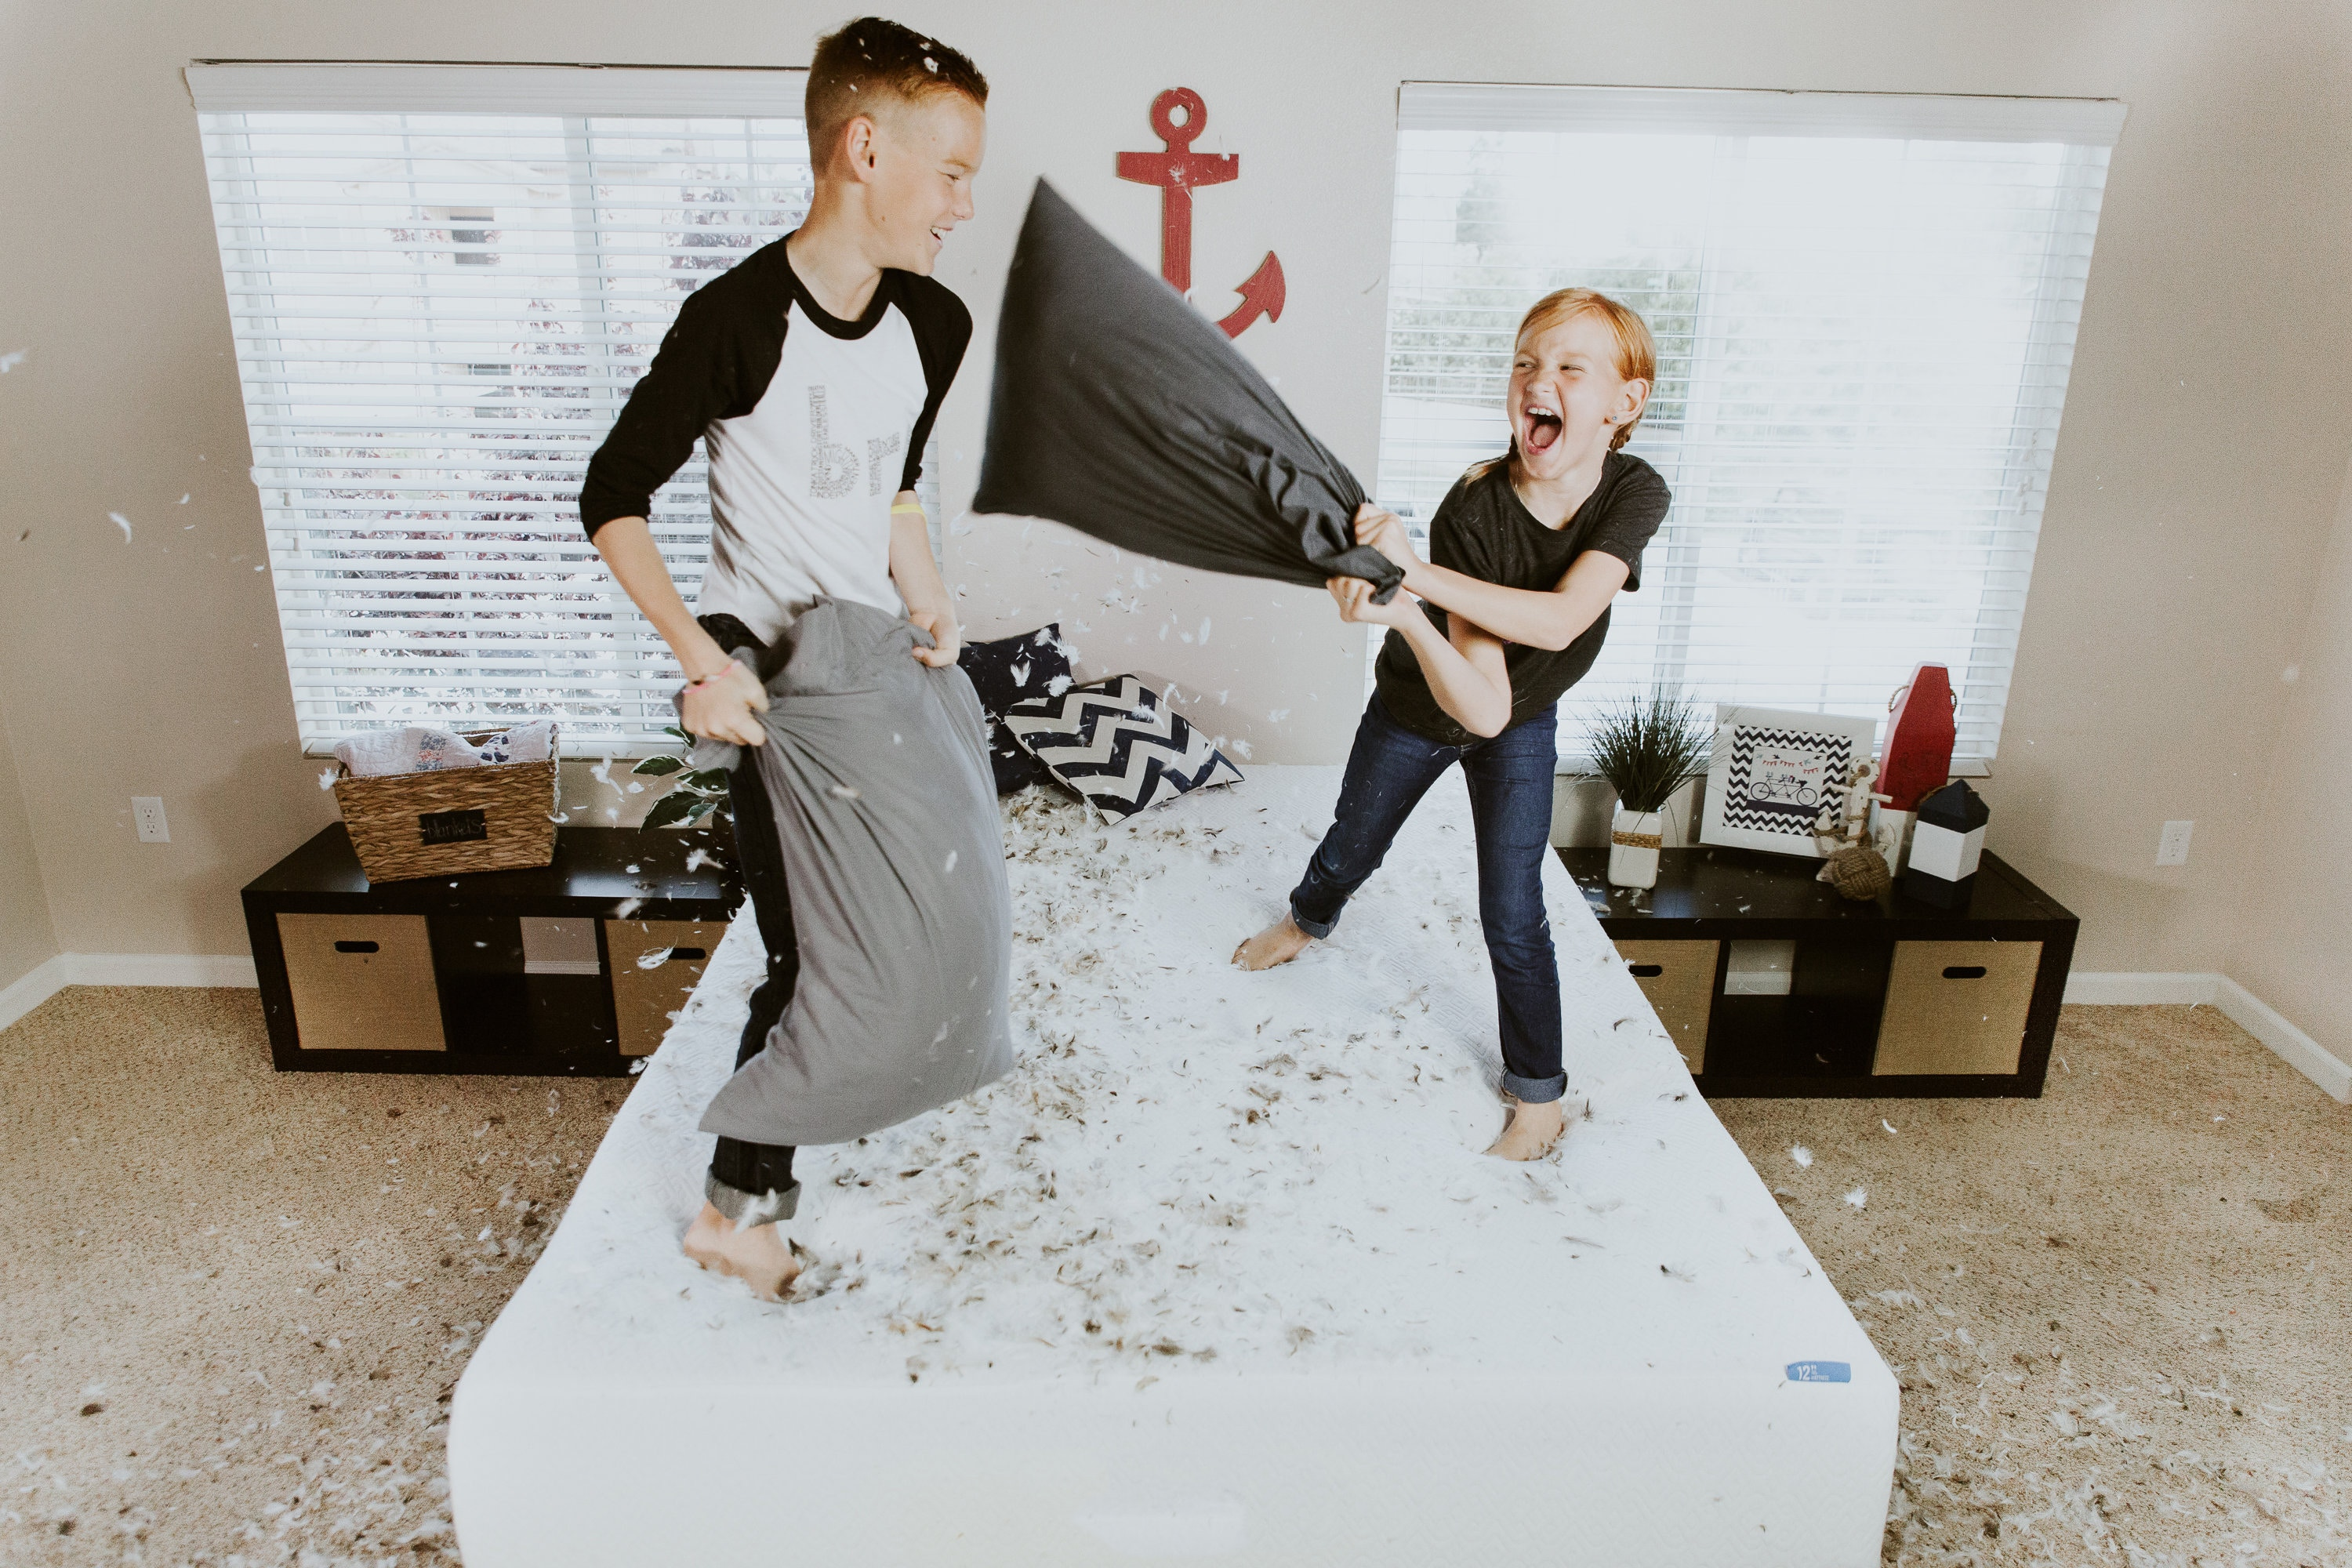 Little boy and girl having a pillow fight with feathers flying all over the floor.